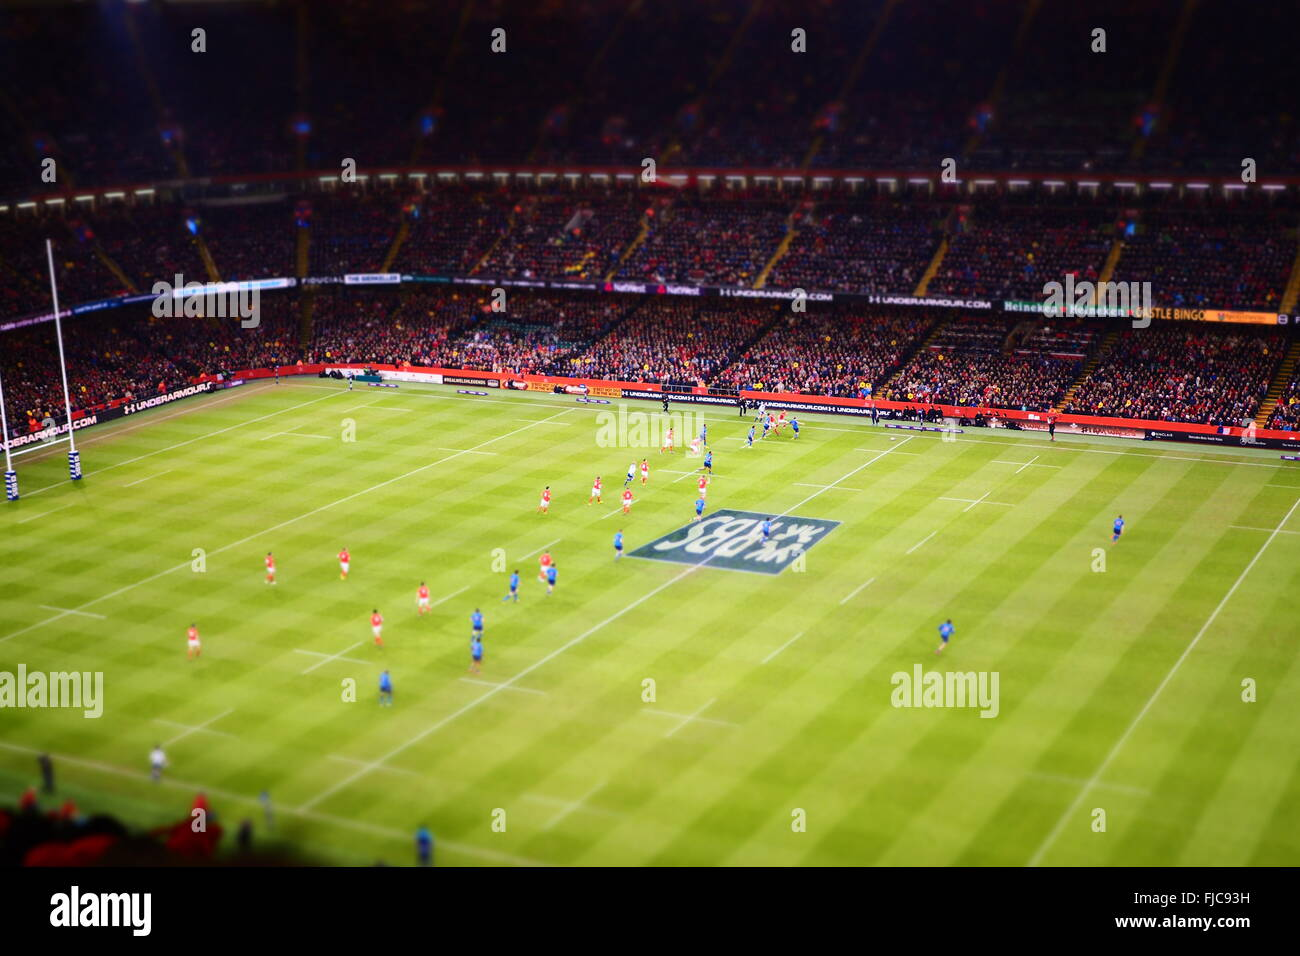 Cardiff,Wales,UK : rugby Six Nations match between Wales and France at Millennium Stadium on 26 February 2016 - Stock Image